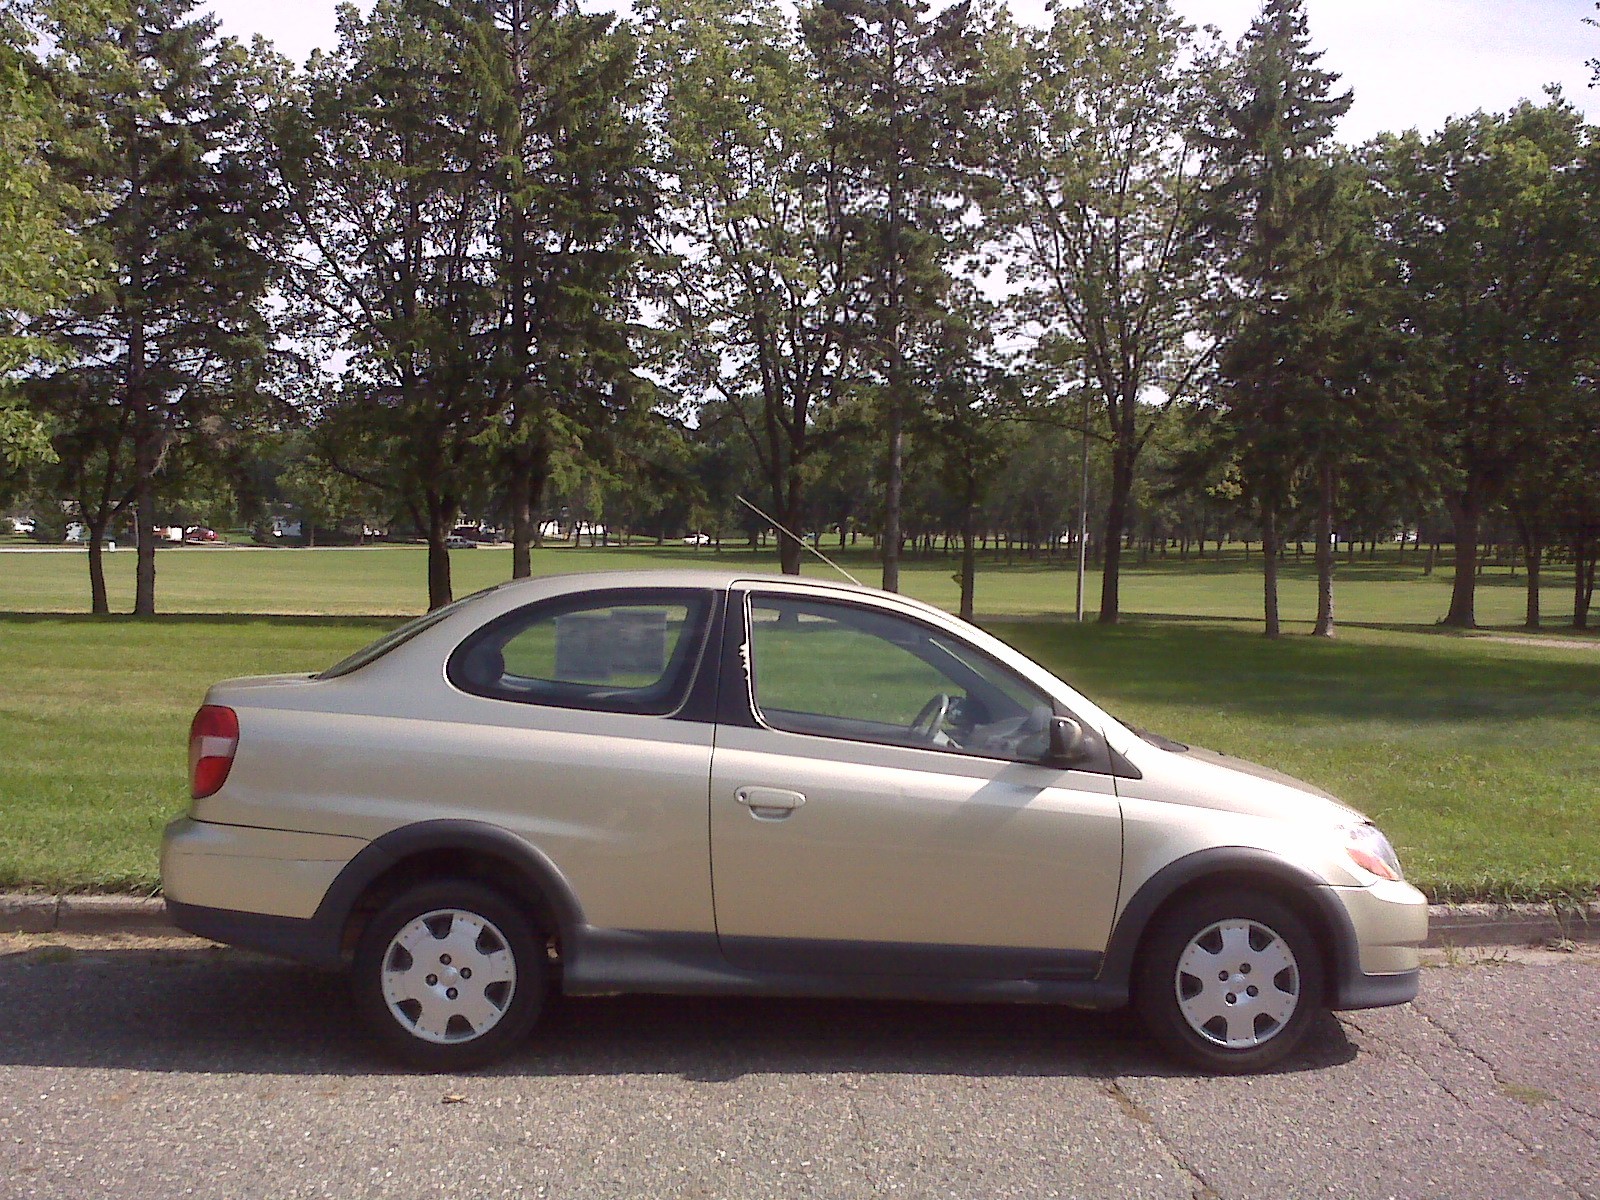 Photograph of a 2000 Toyota Echo